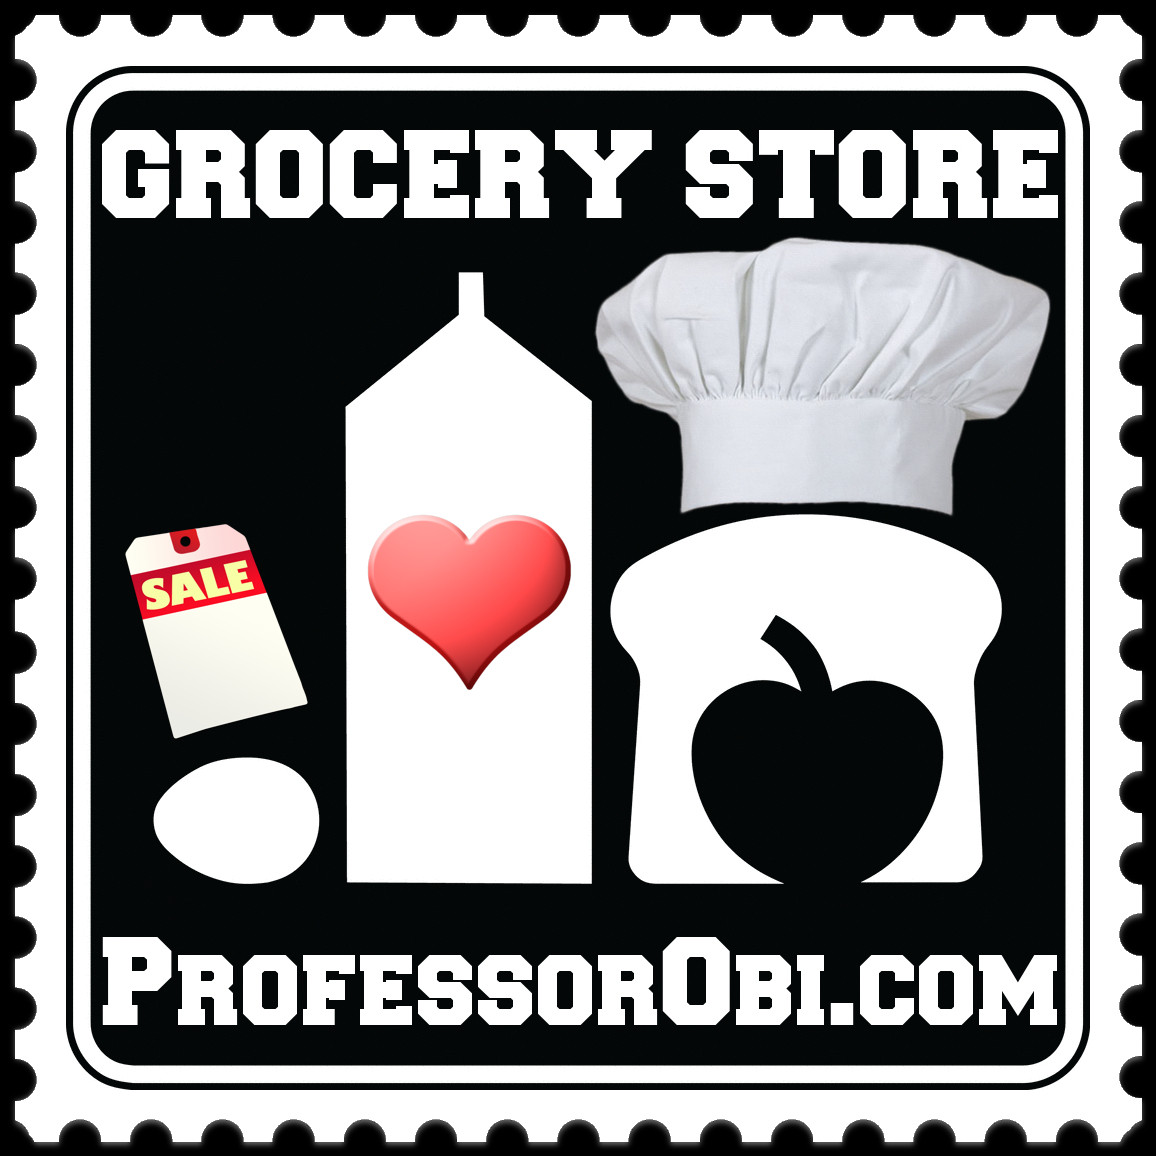 Professor Obi | Food | Gourmet | Groceries | Shop | Store